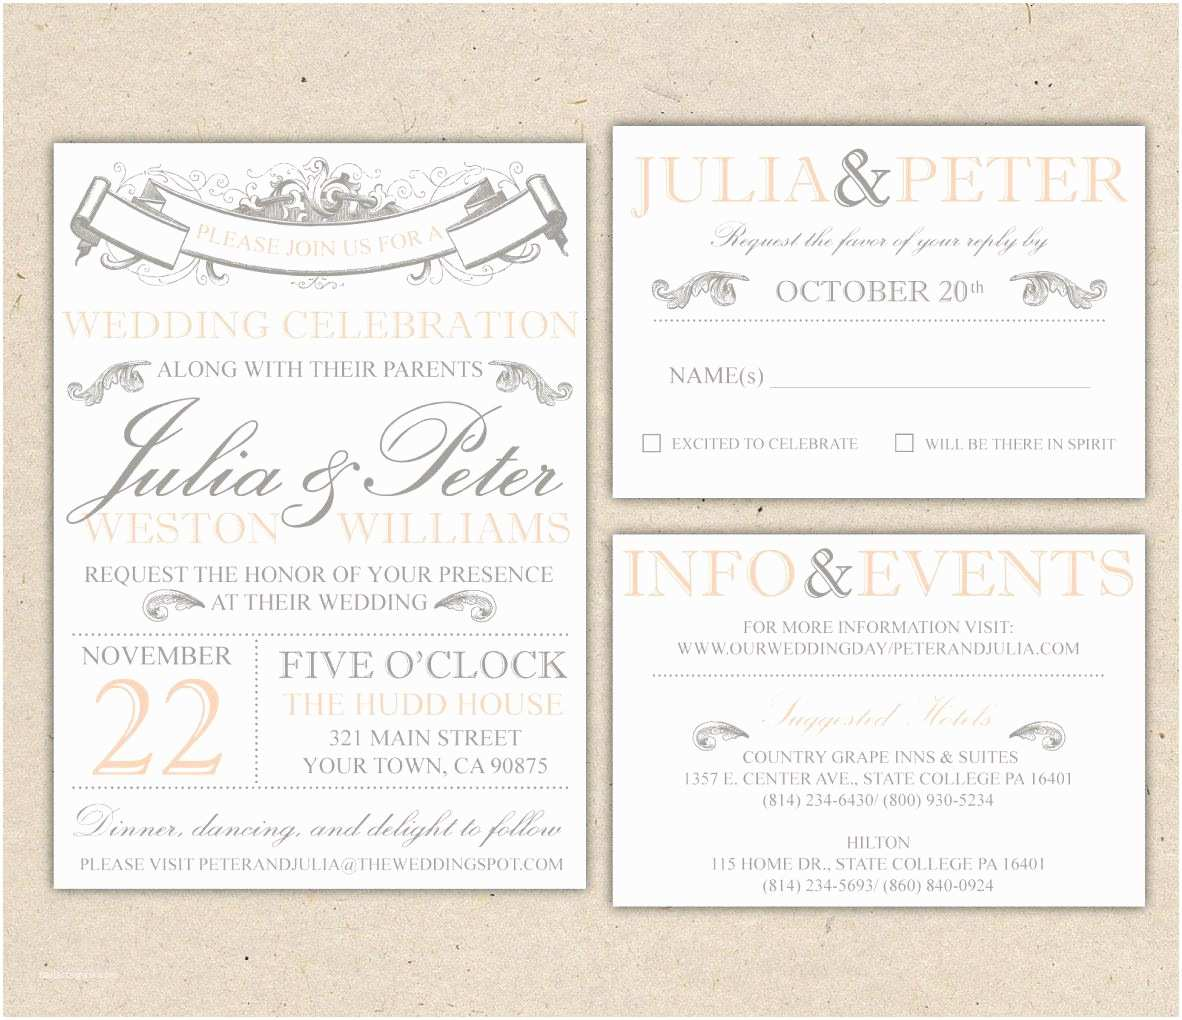 Butterfly Wedding Invitations Templates Baptism Invitation Invitation Card for Baptism Superb